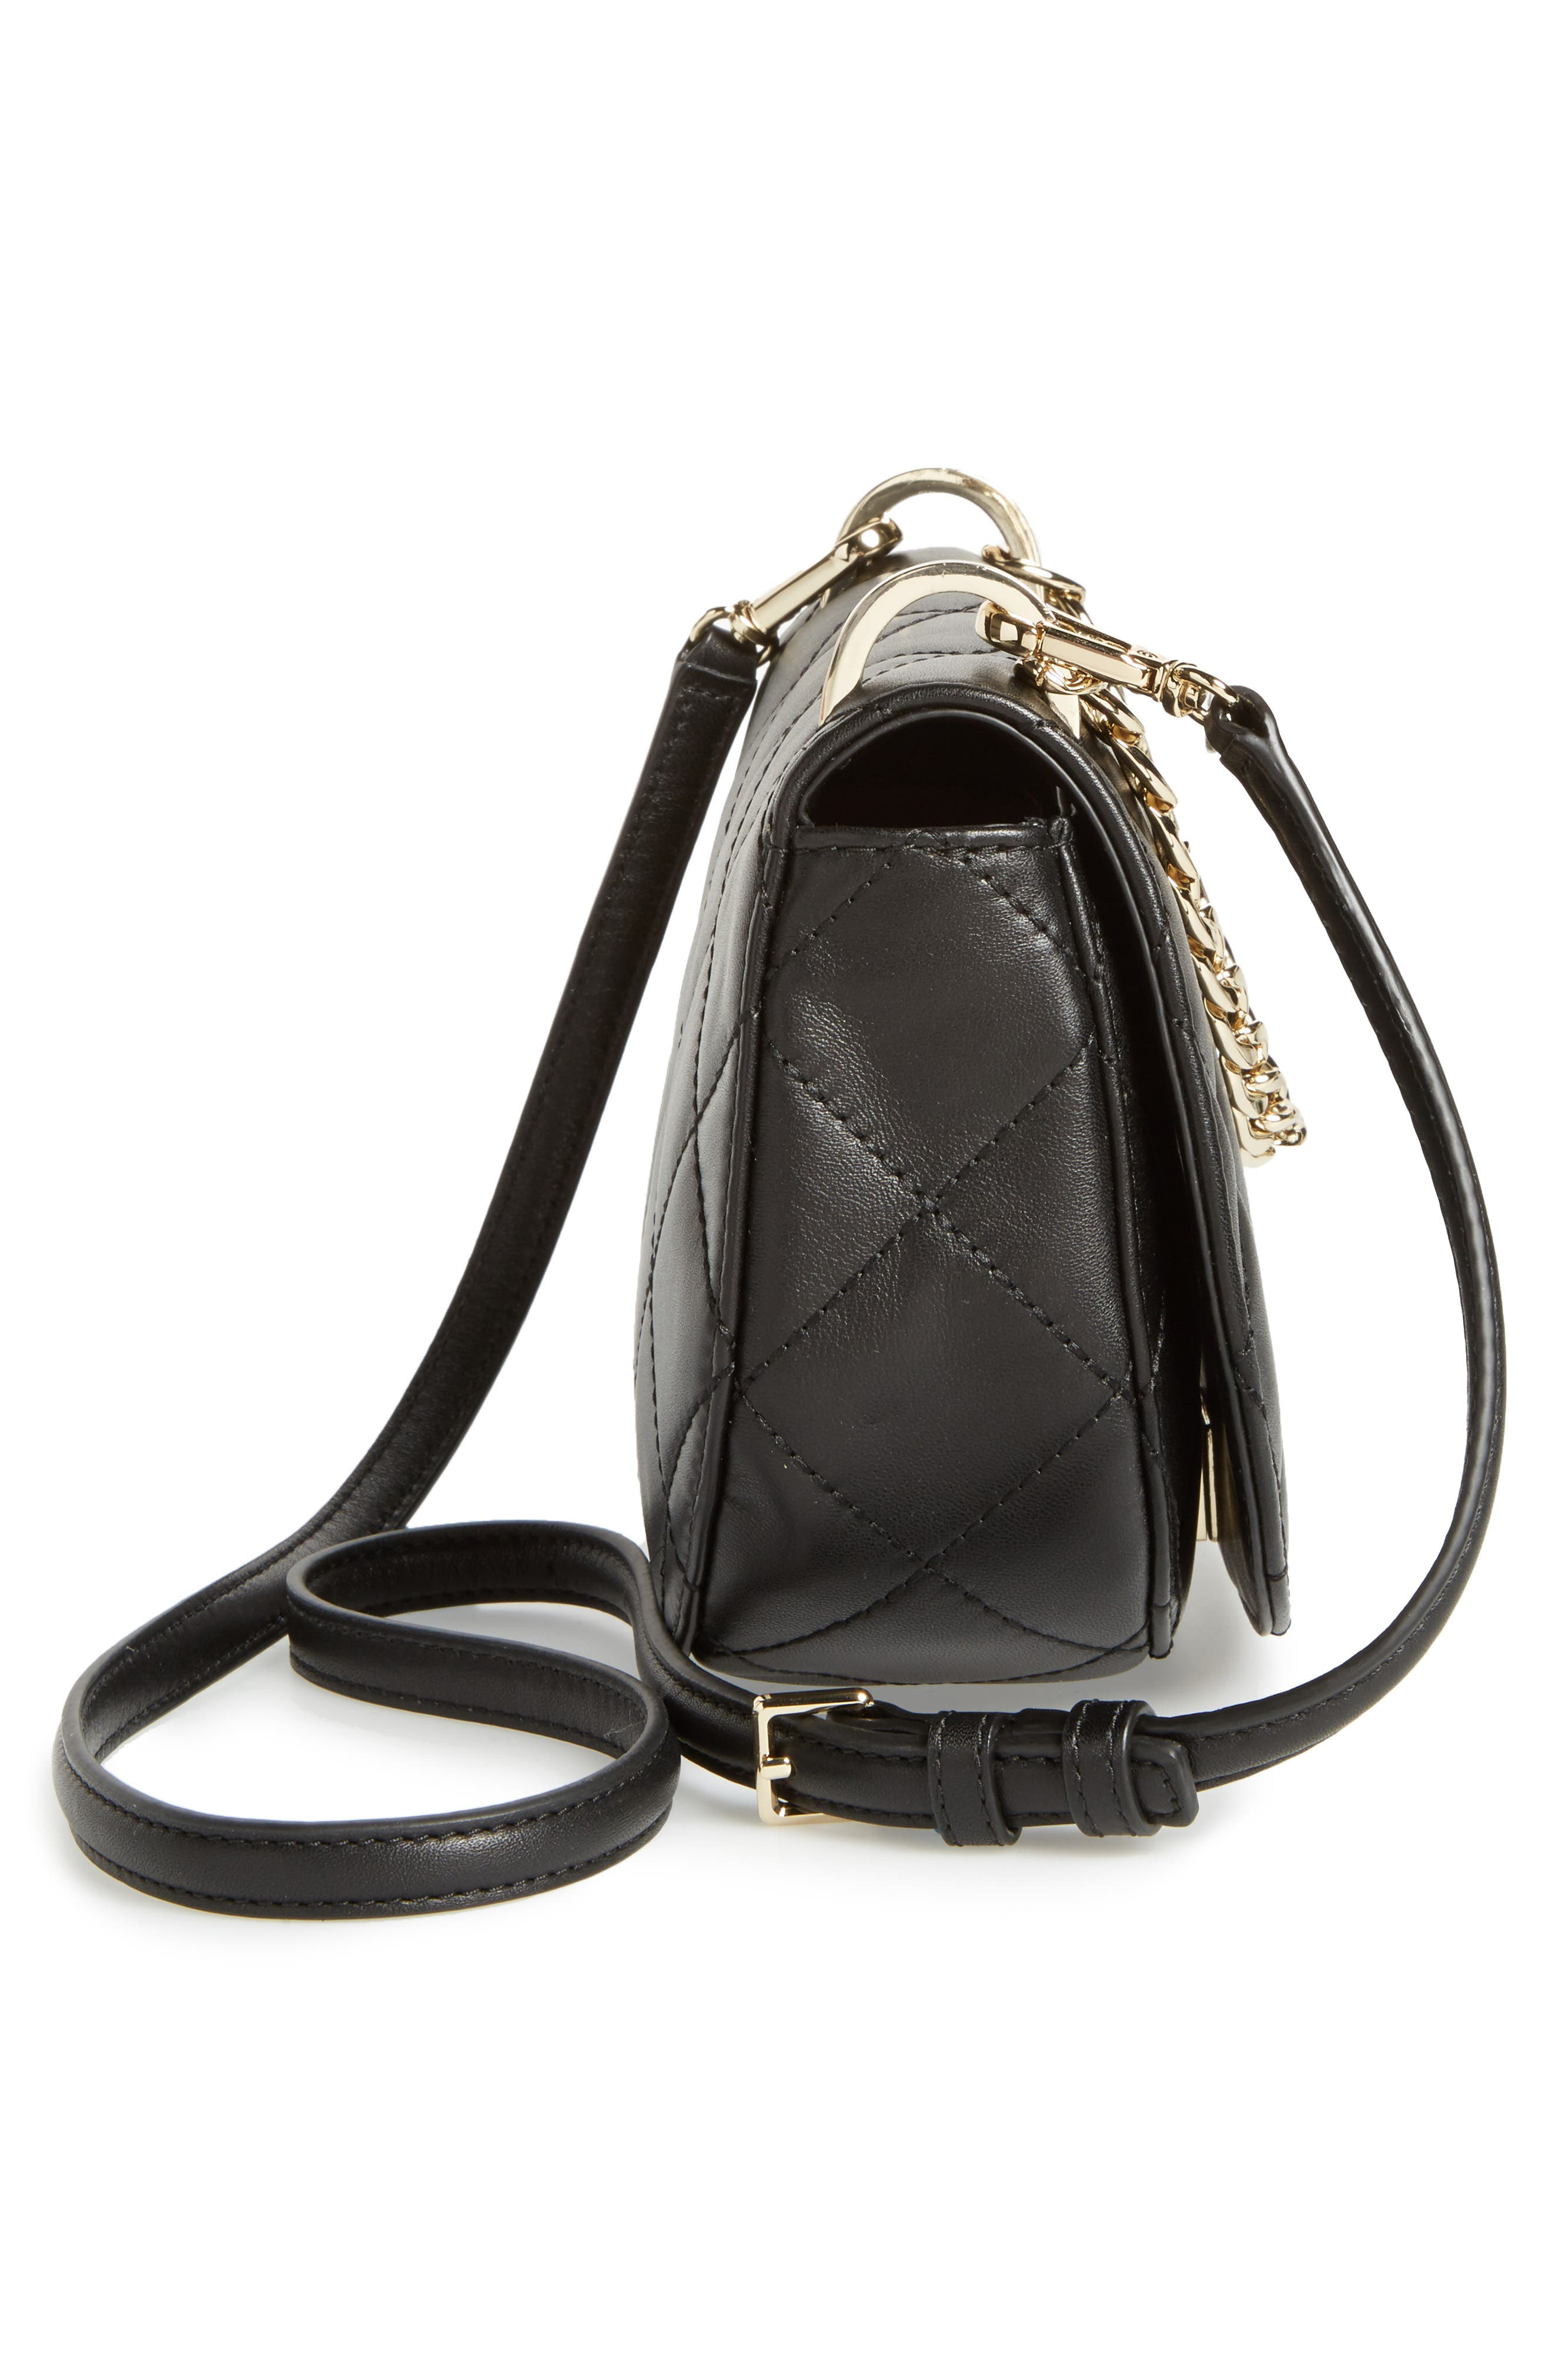 emerson place - rita quilted leather crossbody bag,                             Alternate thumbnail 5, color,                             001